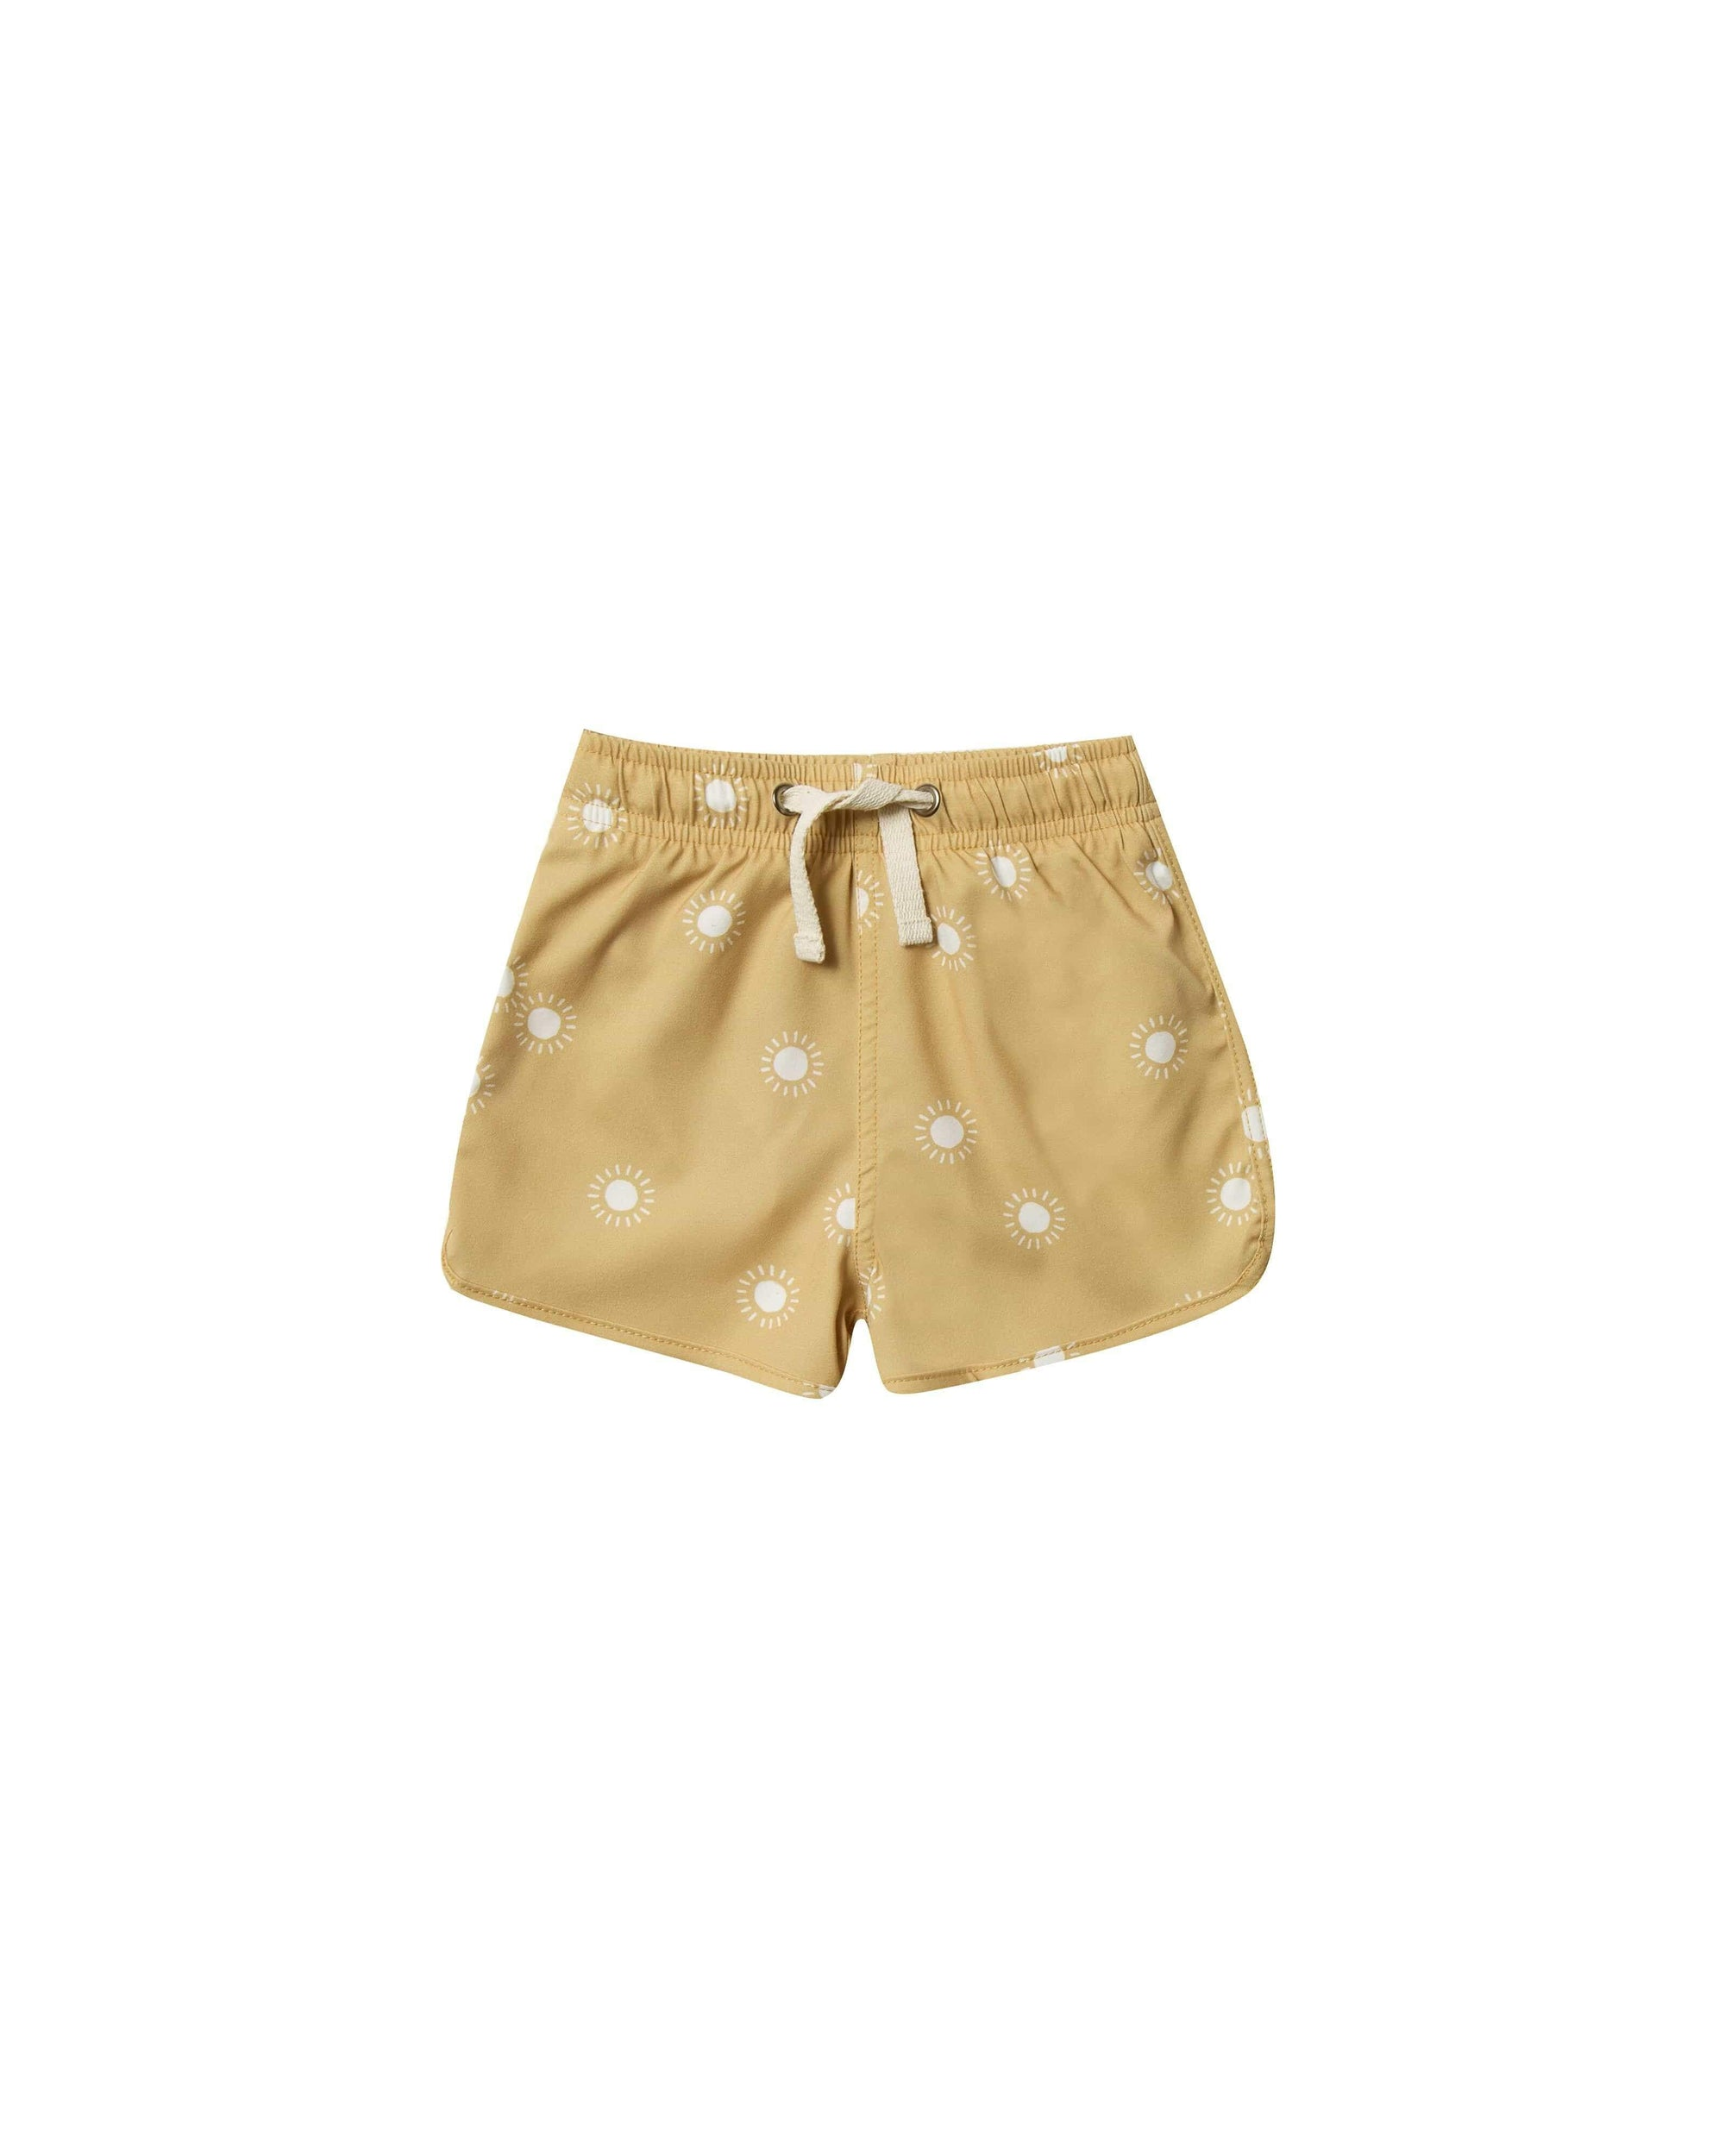 Rylee & Cru Shorts Sunburst Swim Trunk - Citron